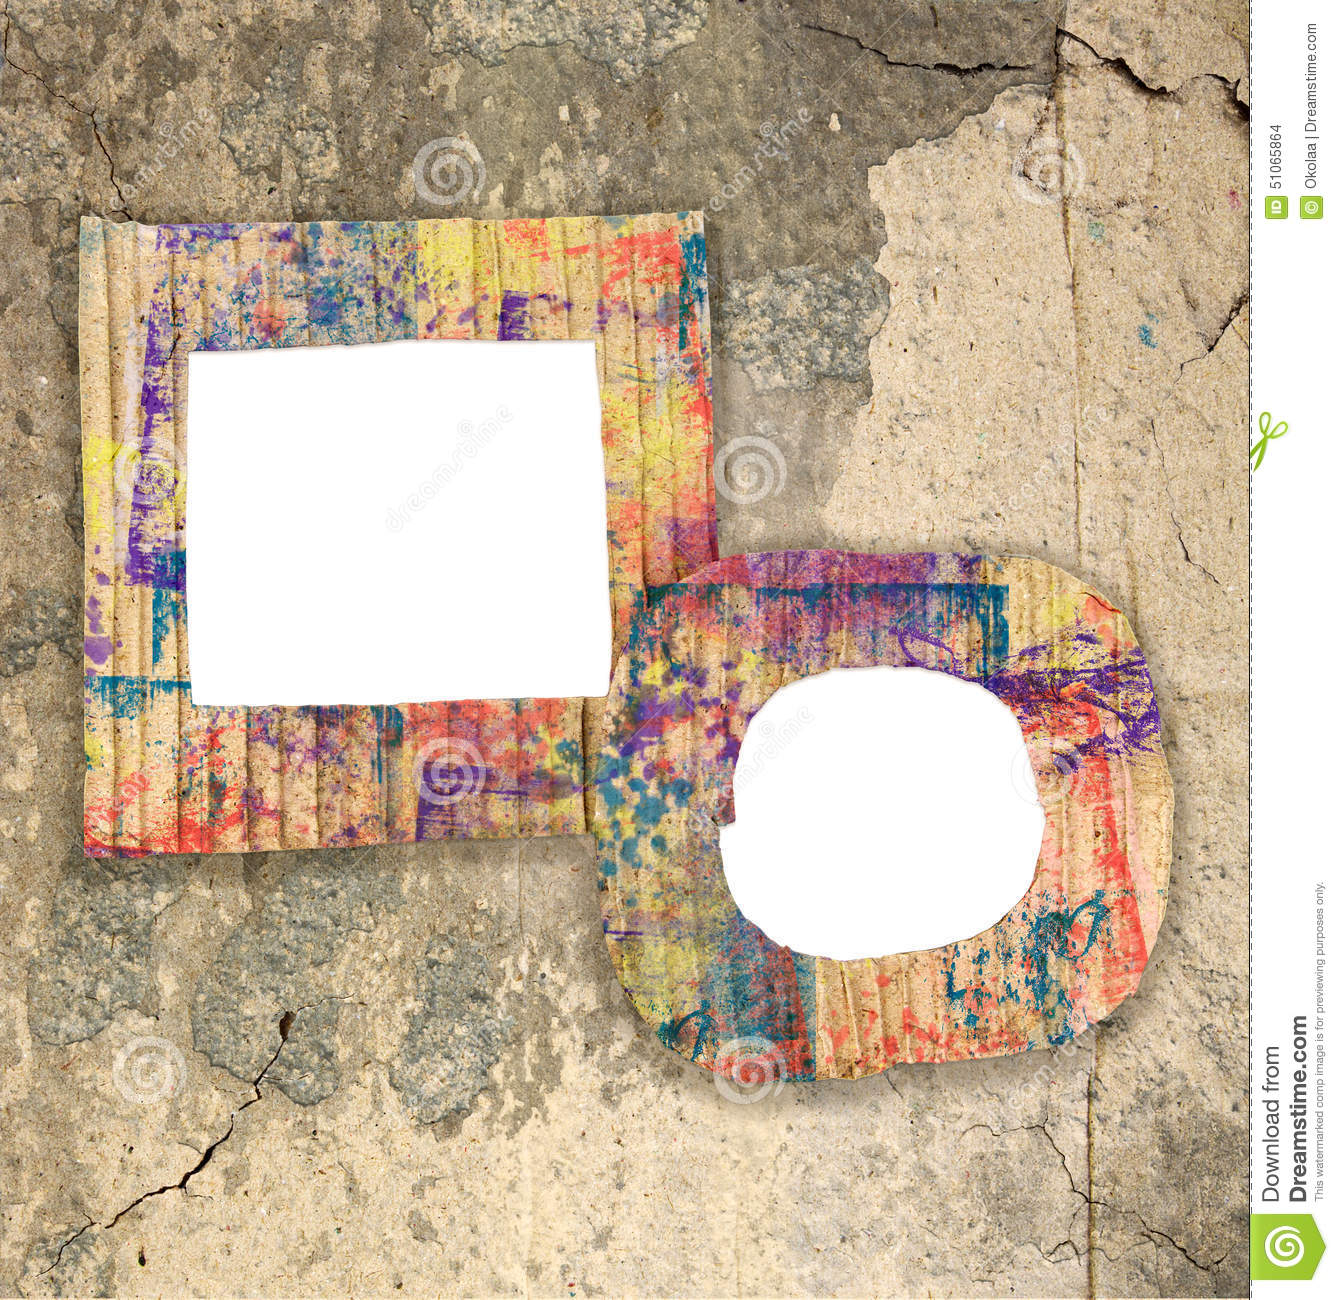 Two Blank Colorful Painted Cardboard Frames On Wall Stock Photo